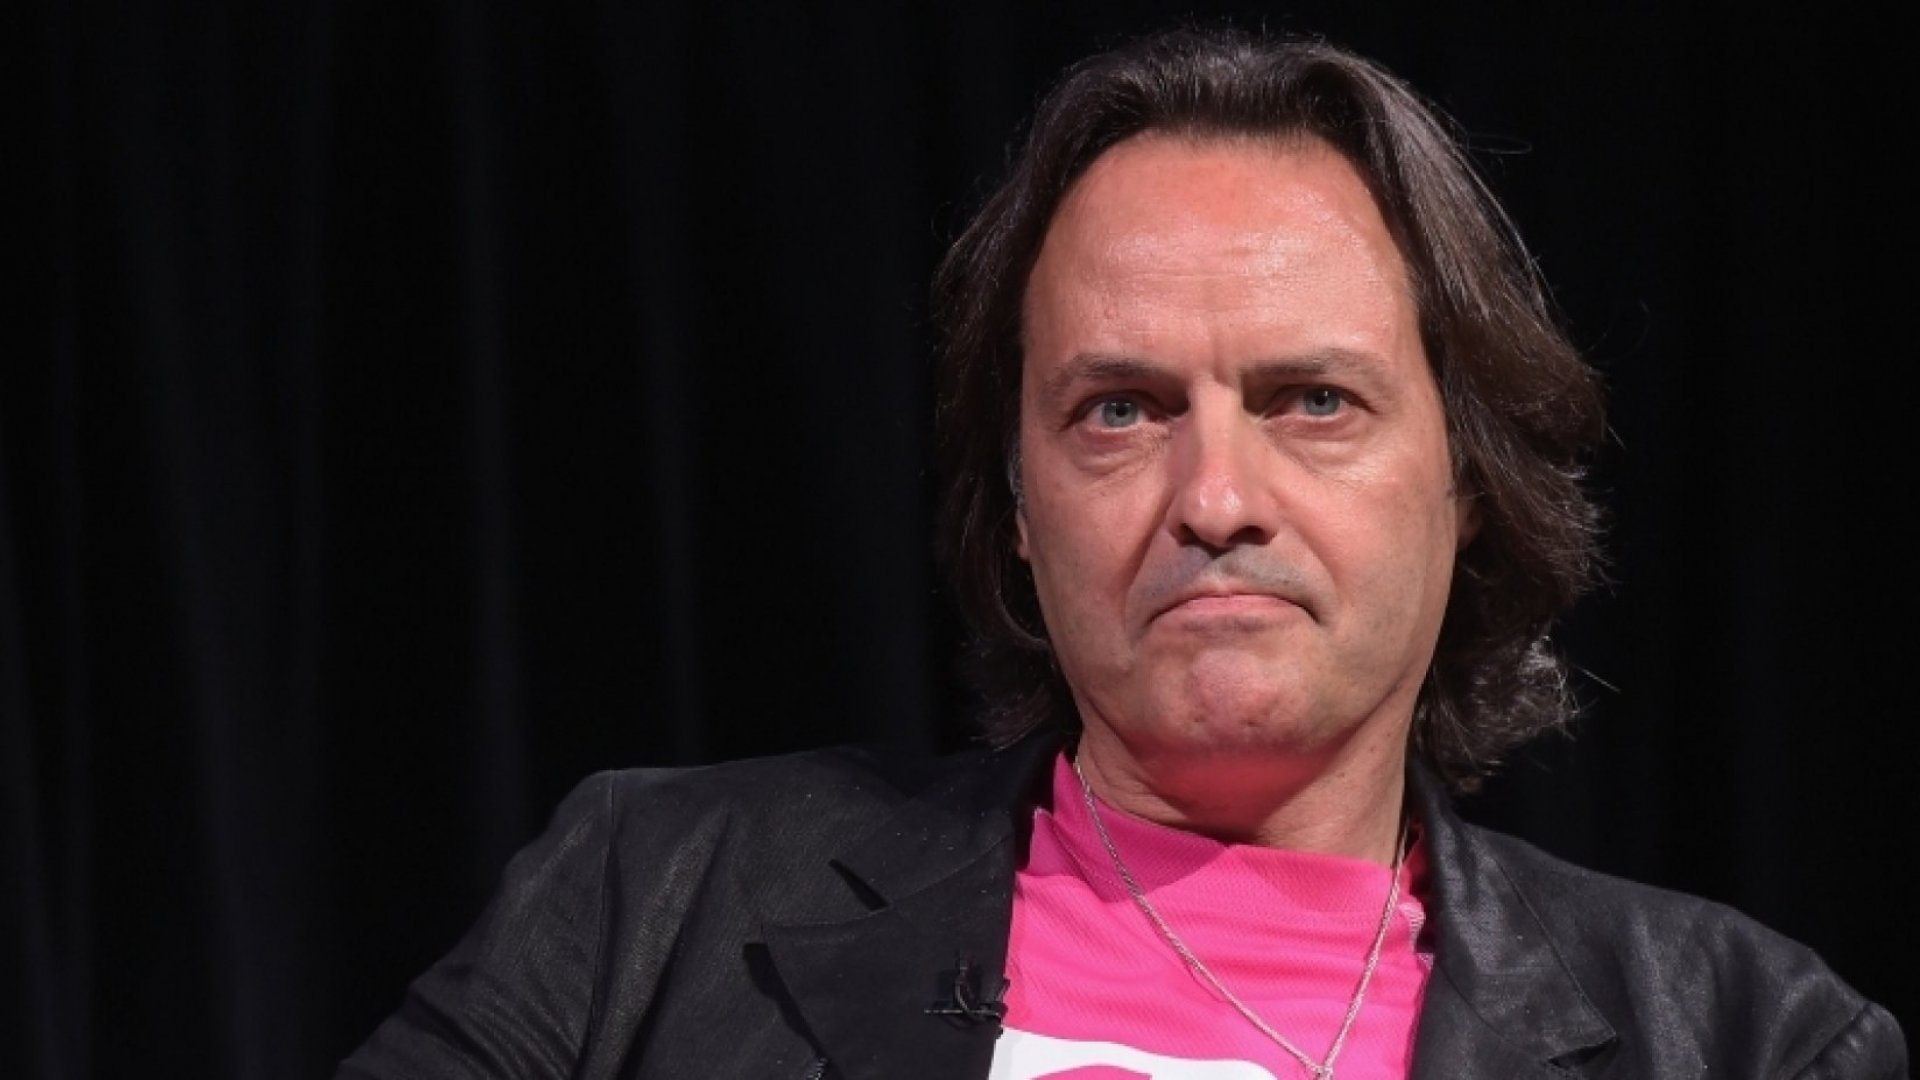 T-Mobile CEO/Executive Producer John Legere takes part in a Q&A following the HBO Documentary screening of 'Love Child' on July 15, 2014 in New York City. (Photo by Michael Loccisano/Getty Images for HBO)